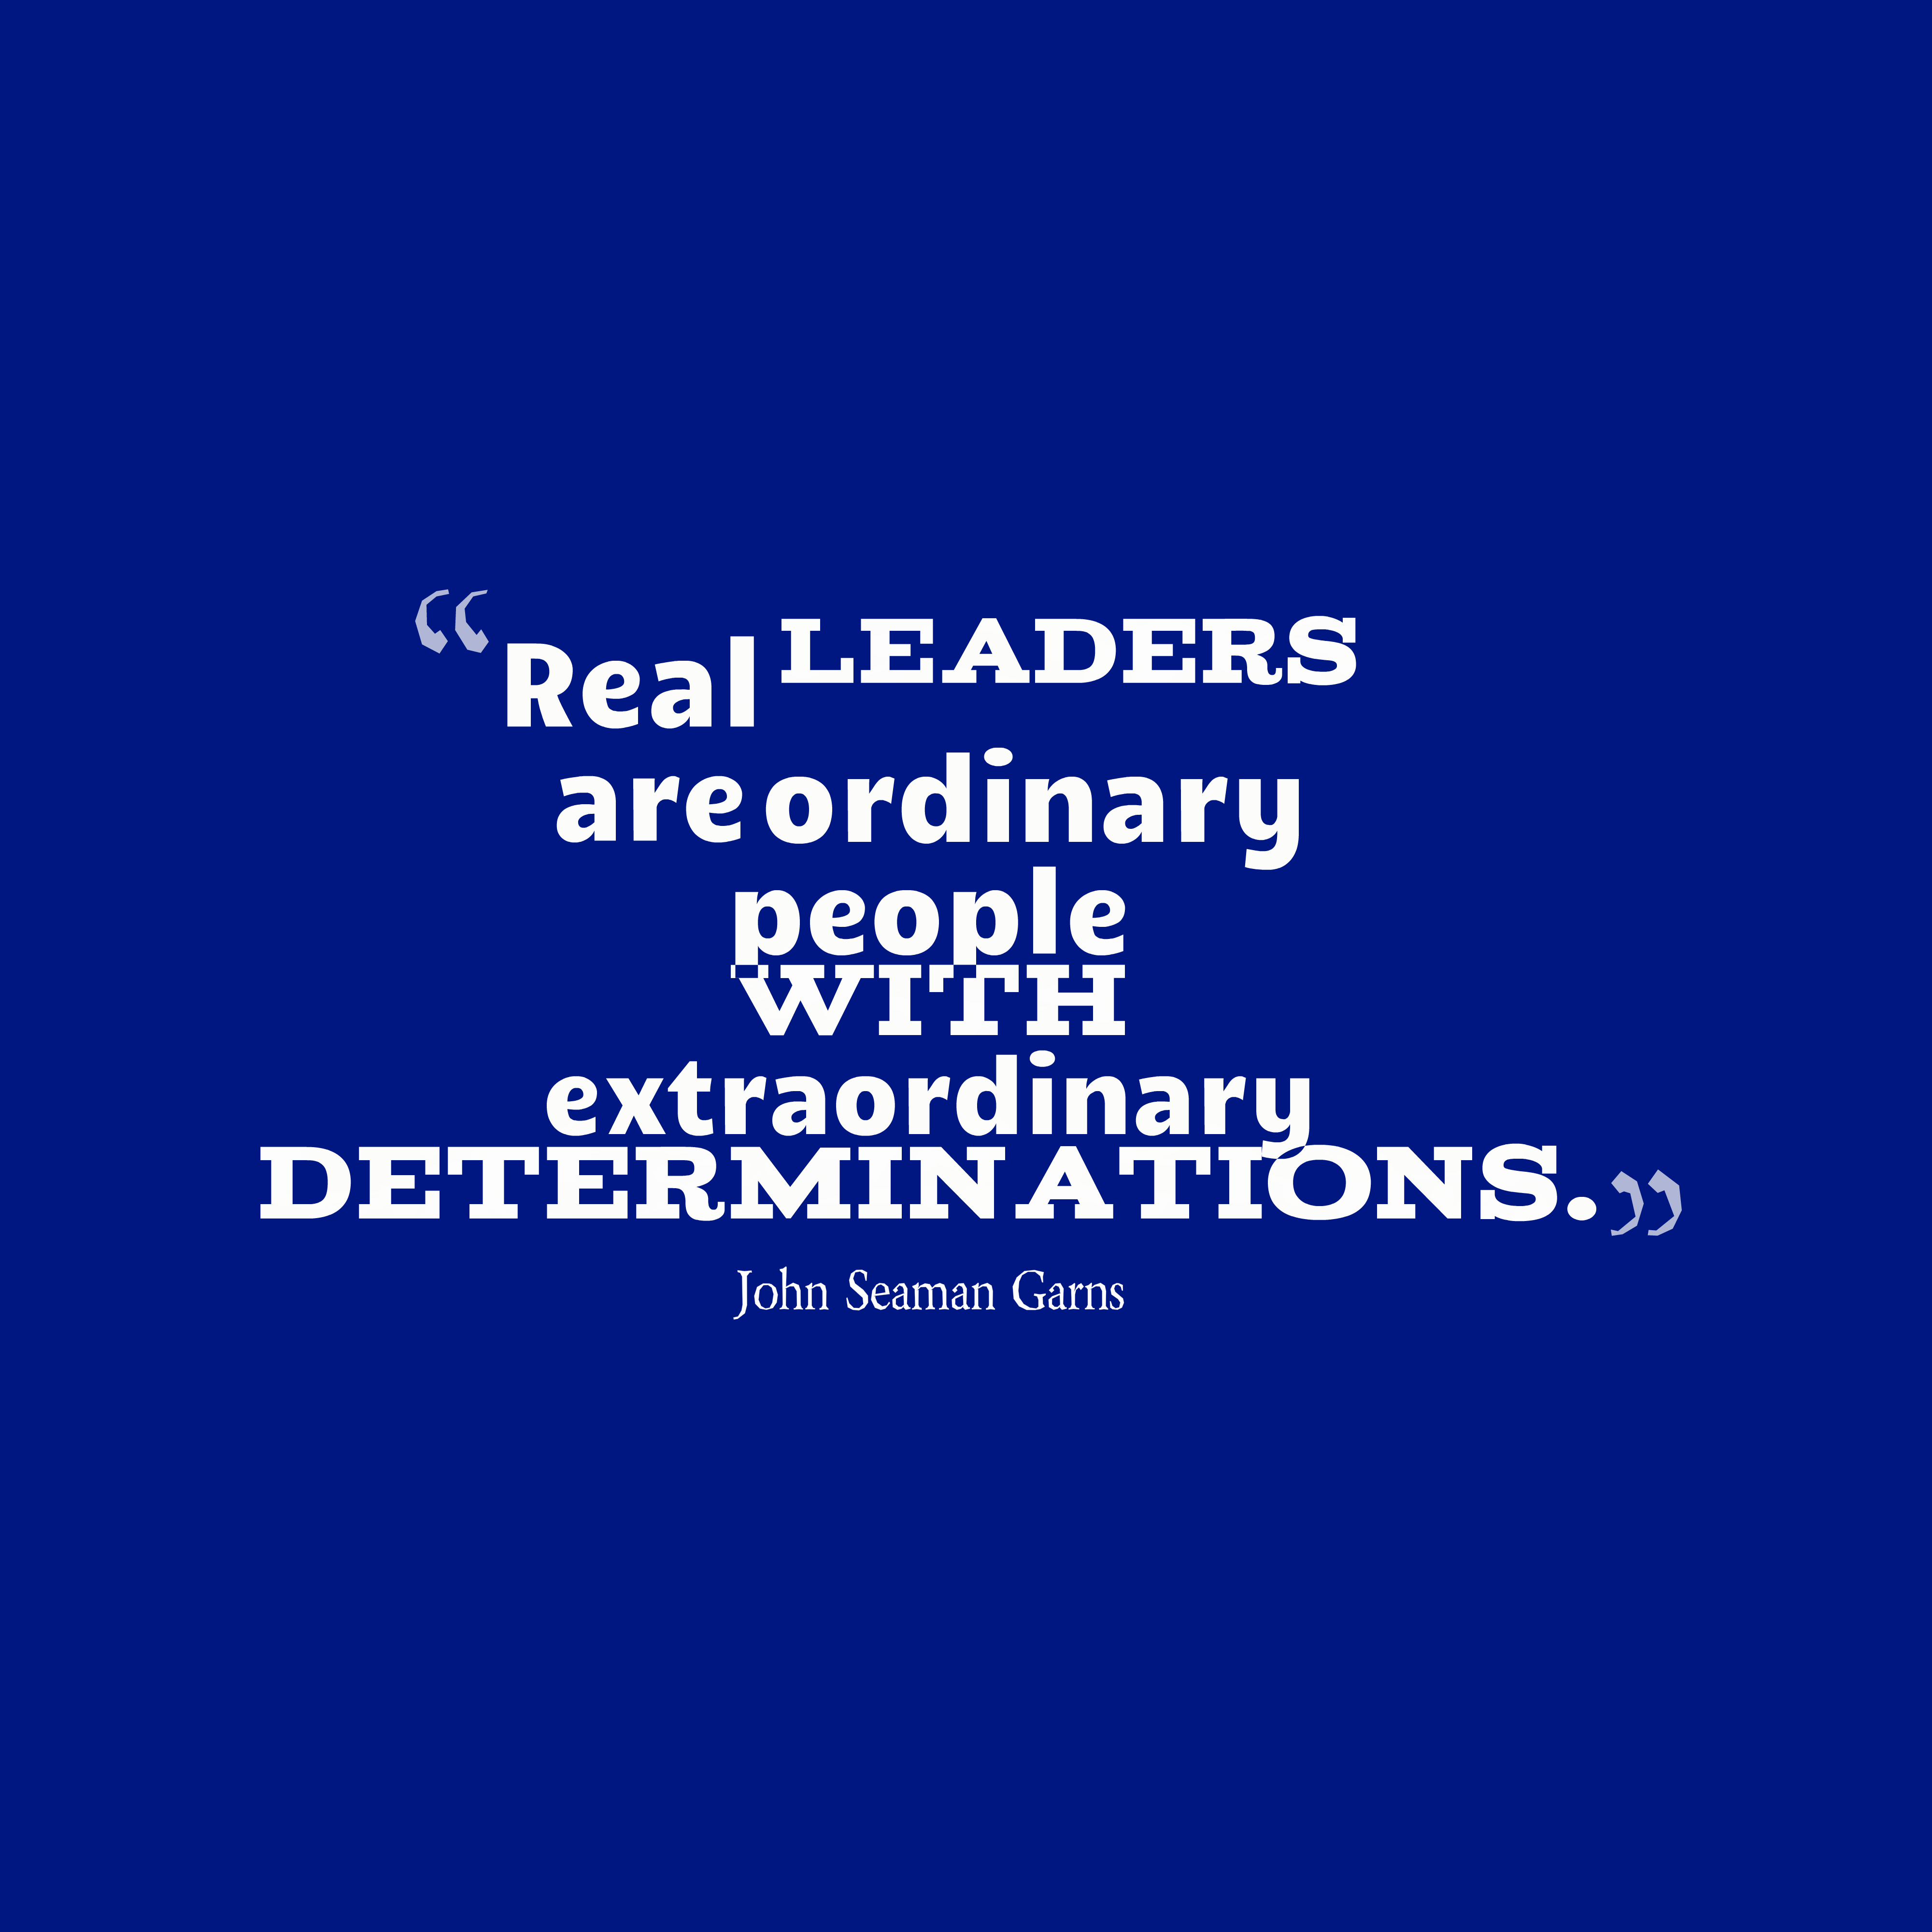 Quotes image of Real leaders are ordinary people with extraordinary determinations.